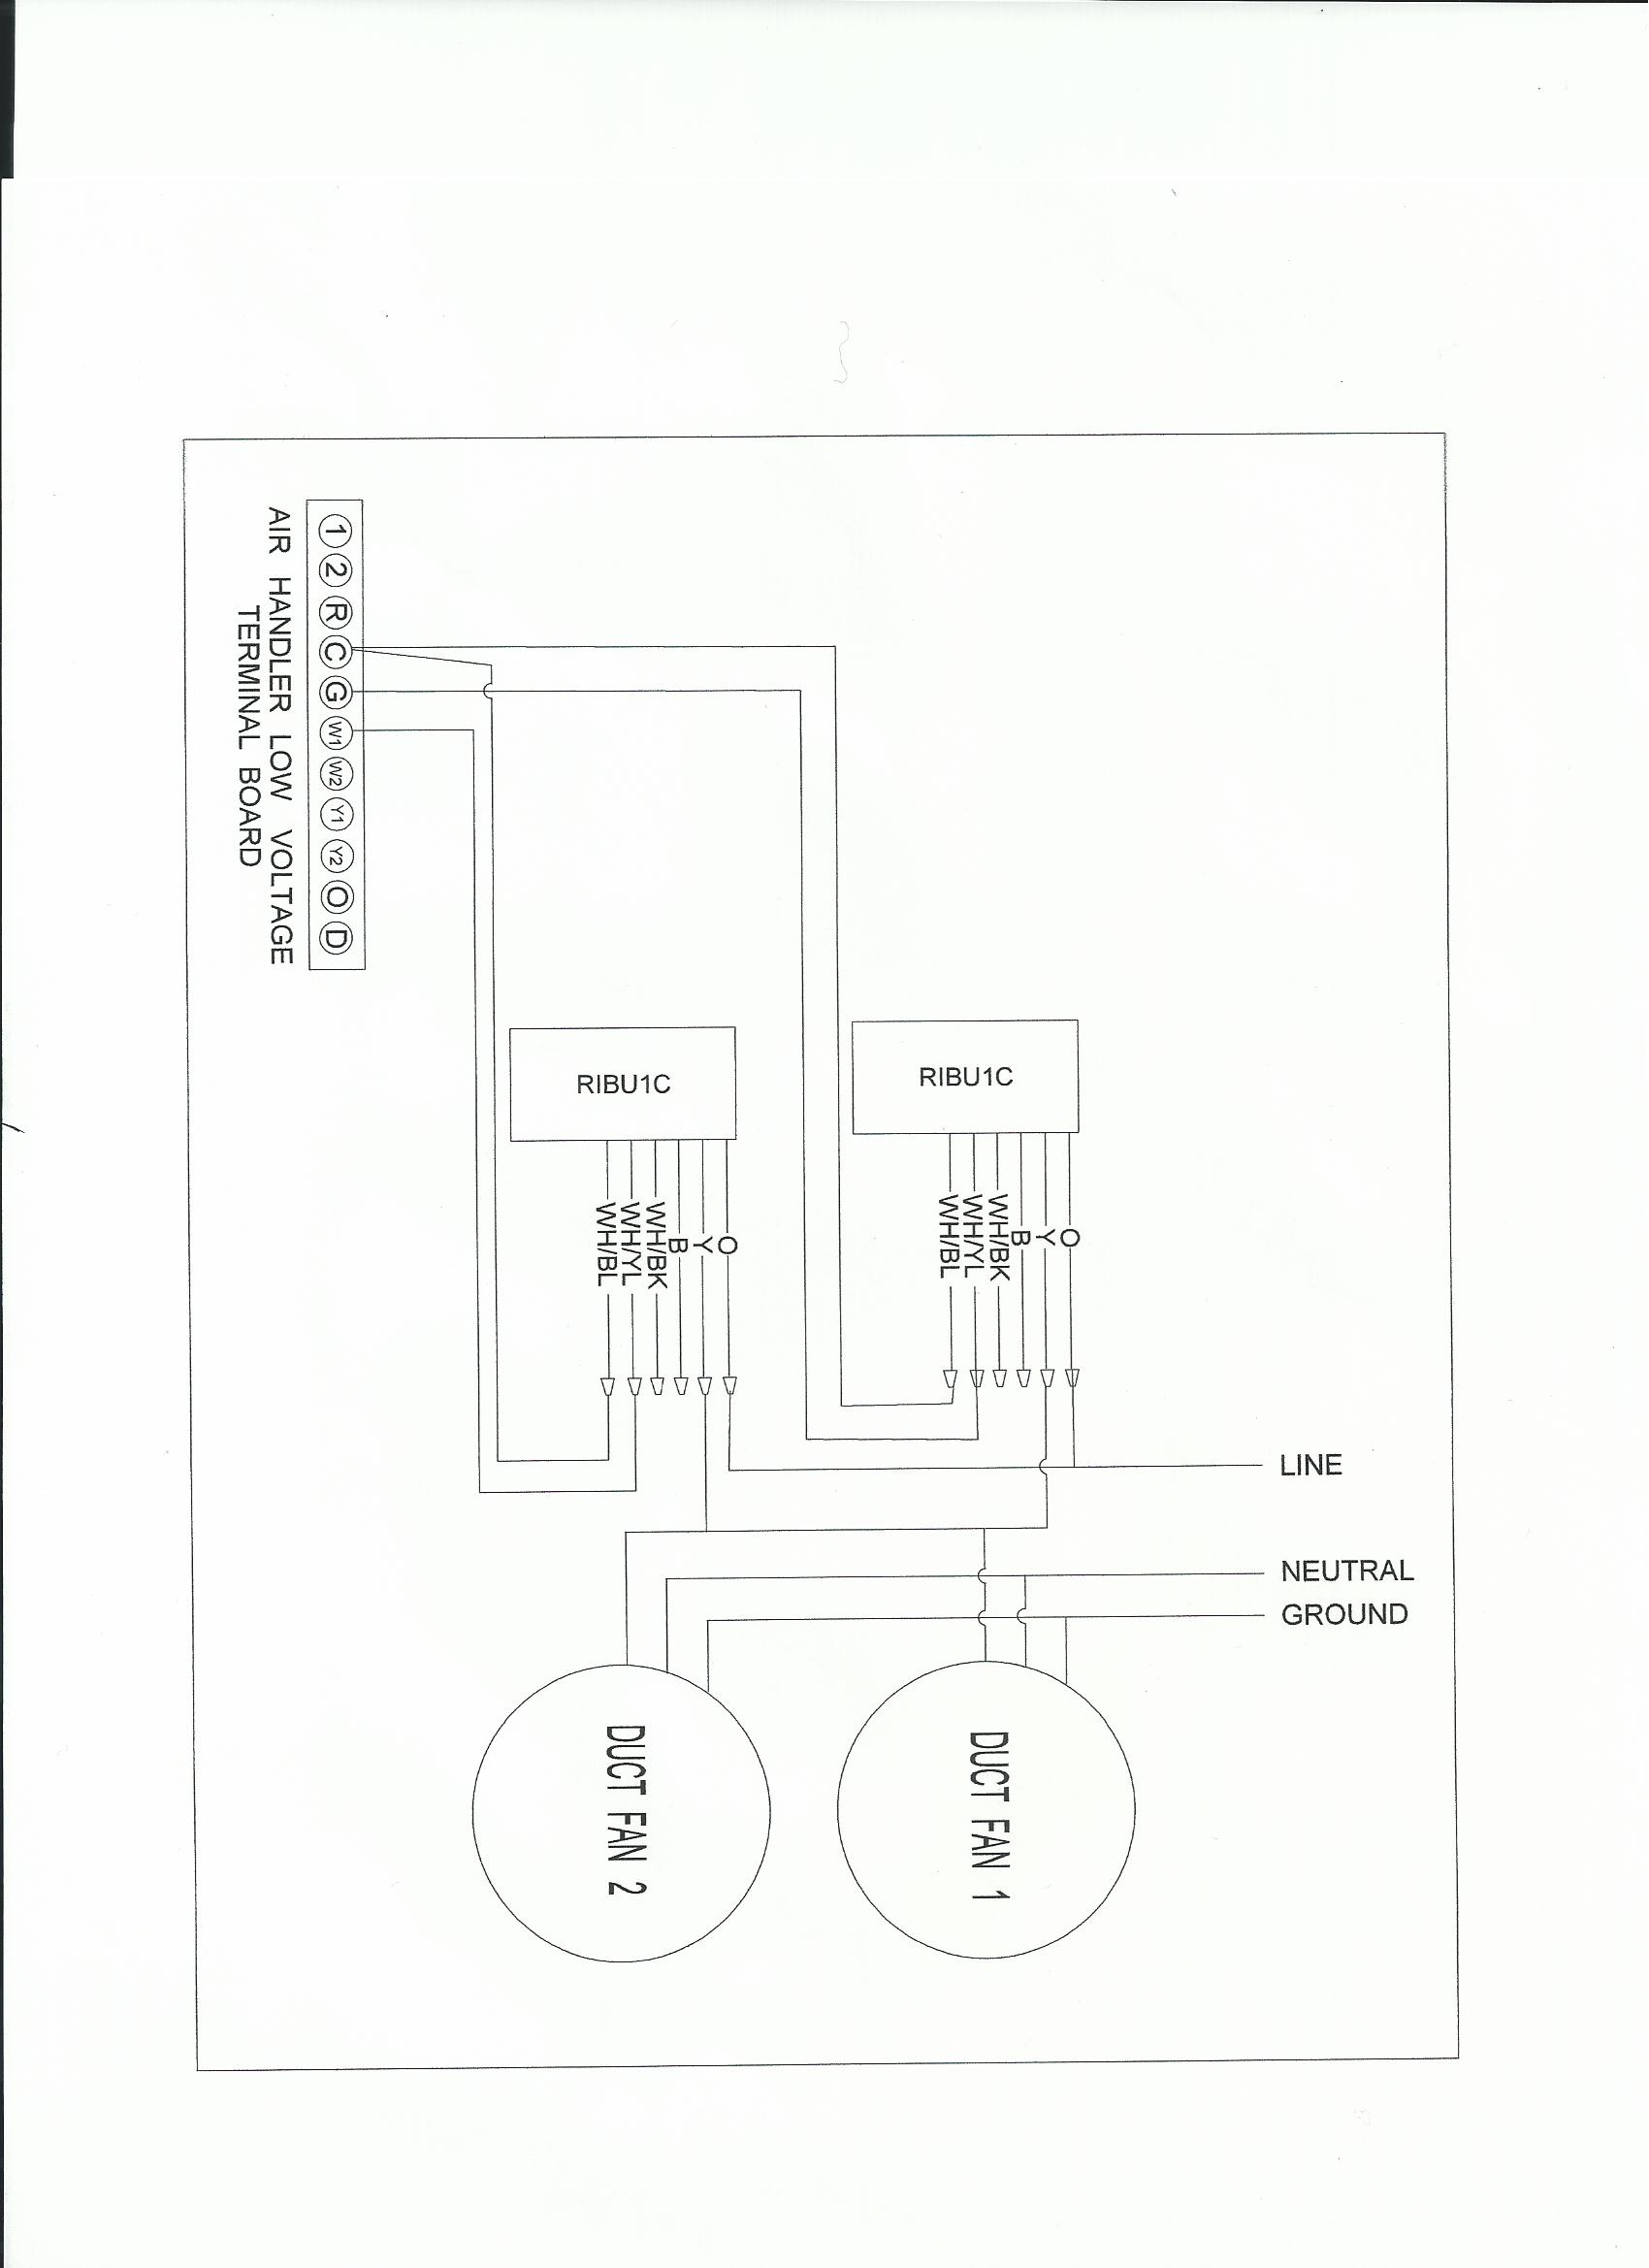 white rodgers fan limit switch wiring diagram 4